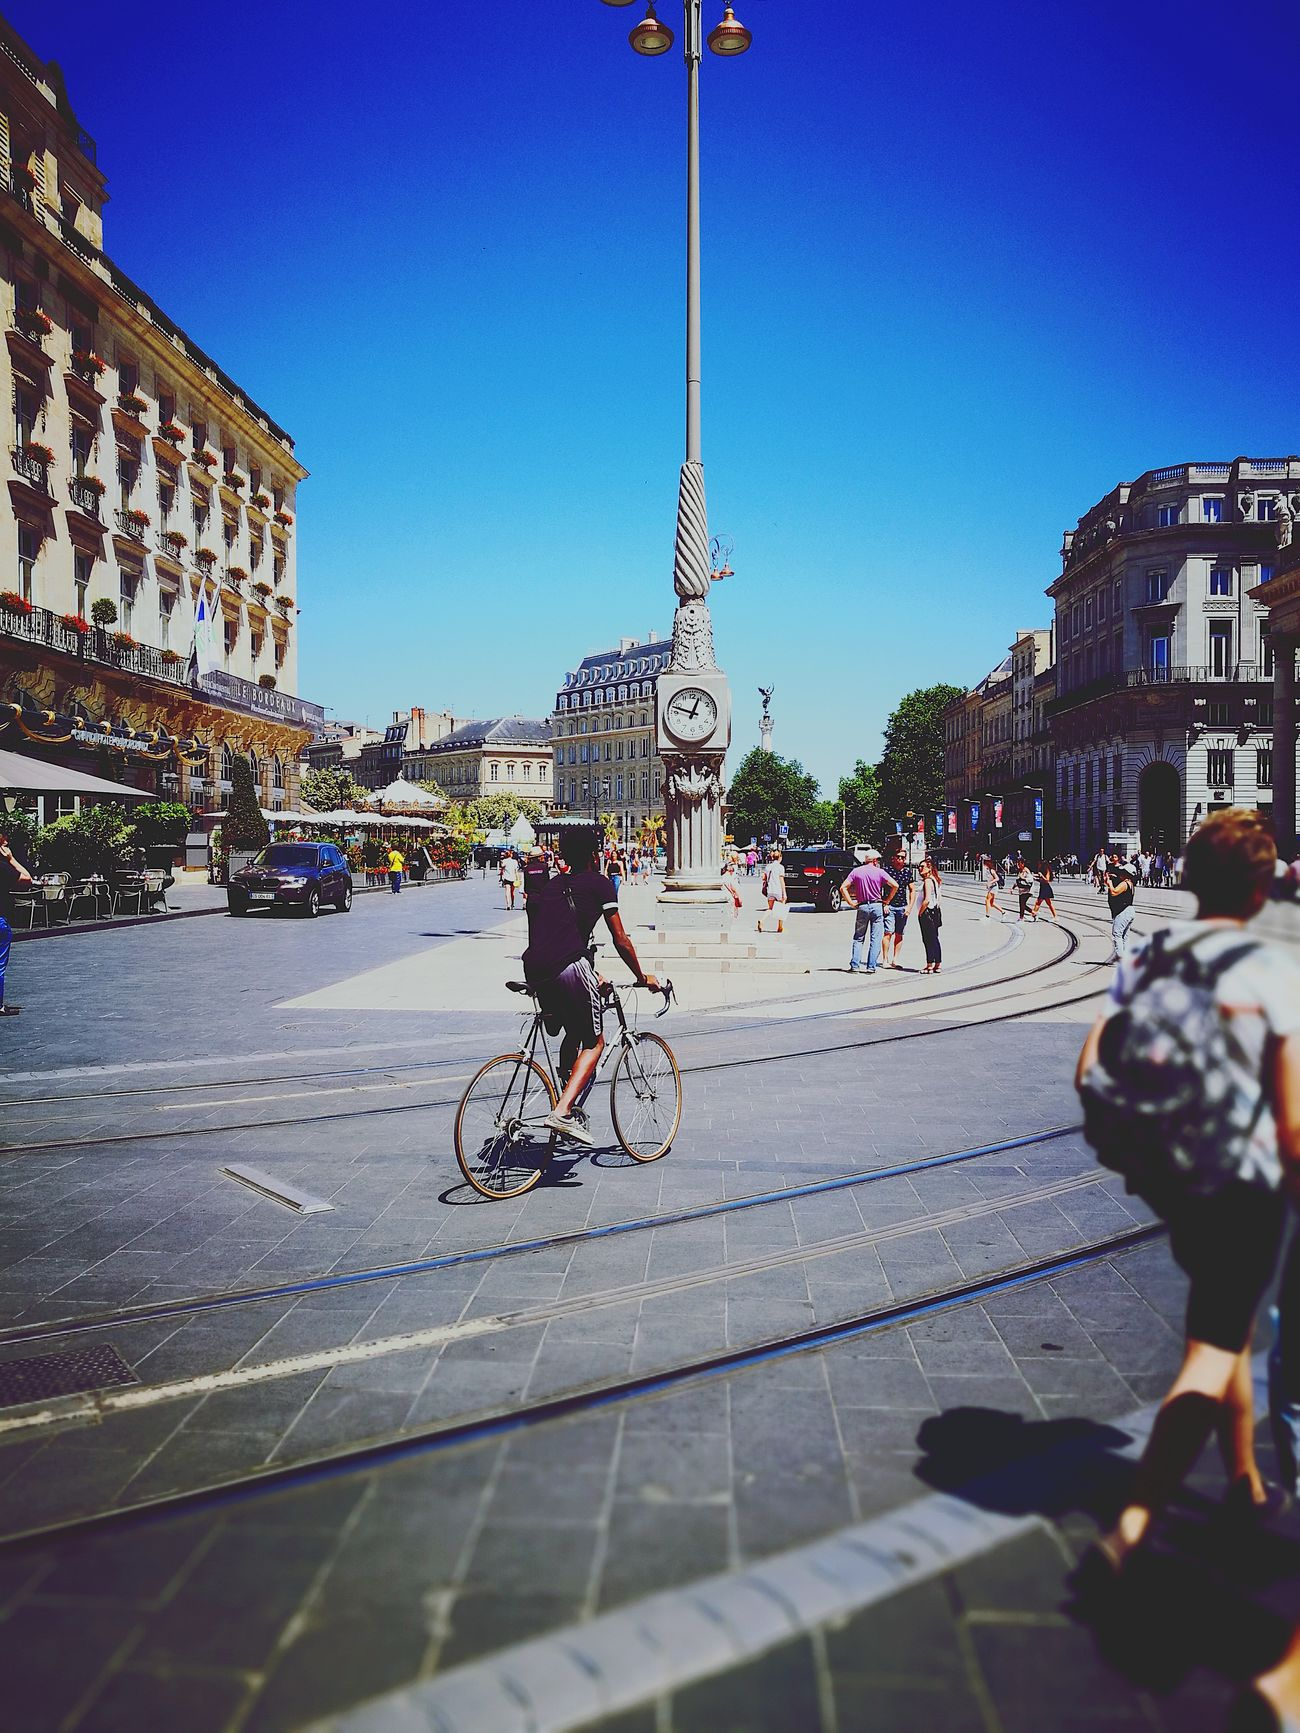 City Street Large Group Of People Clear Sky Architecture Bicycle City Life Bordeauxmaville Bordeauxtourism